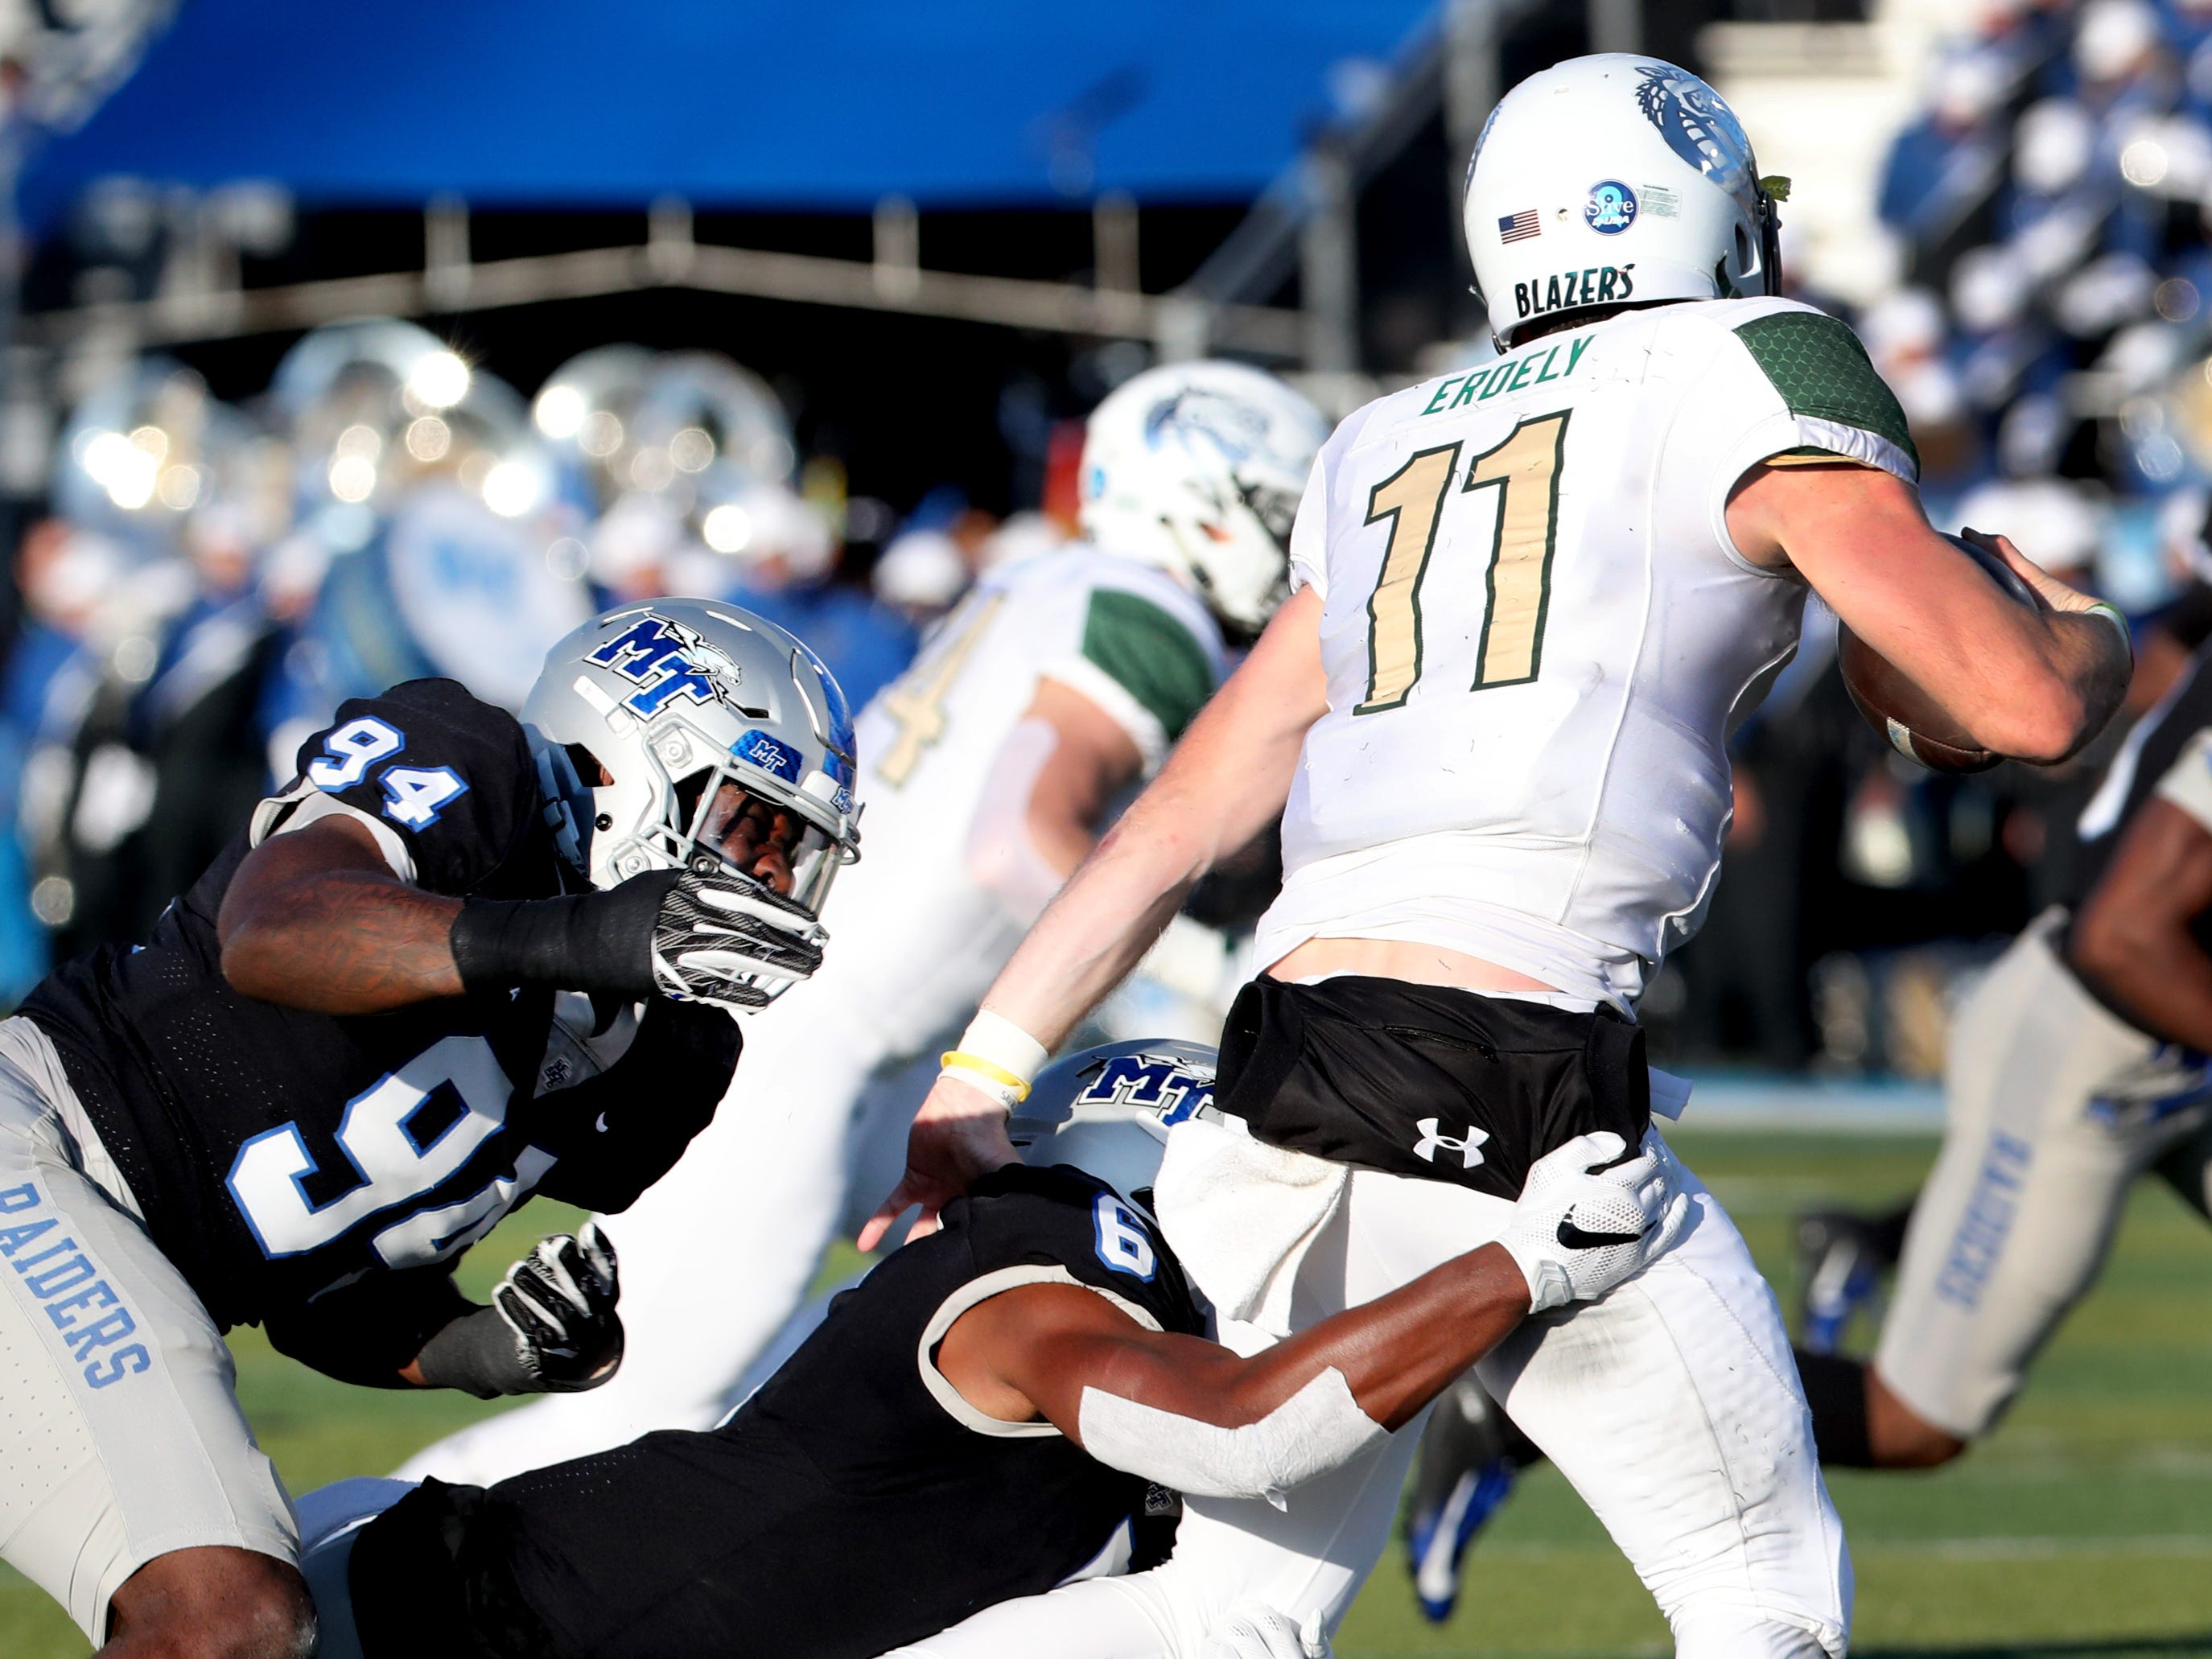 UAB's quarterback AJ Erdely (11) is sacked by MTSU's Tyshun Render (94) and Khalil Brooks (6) during the game at MTSU on Saturday, Nov. 24, 2018.